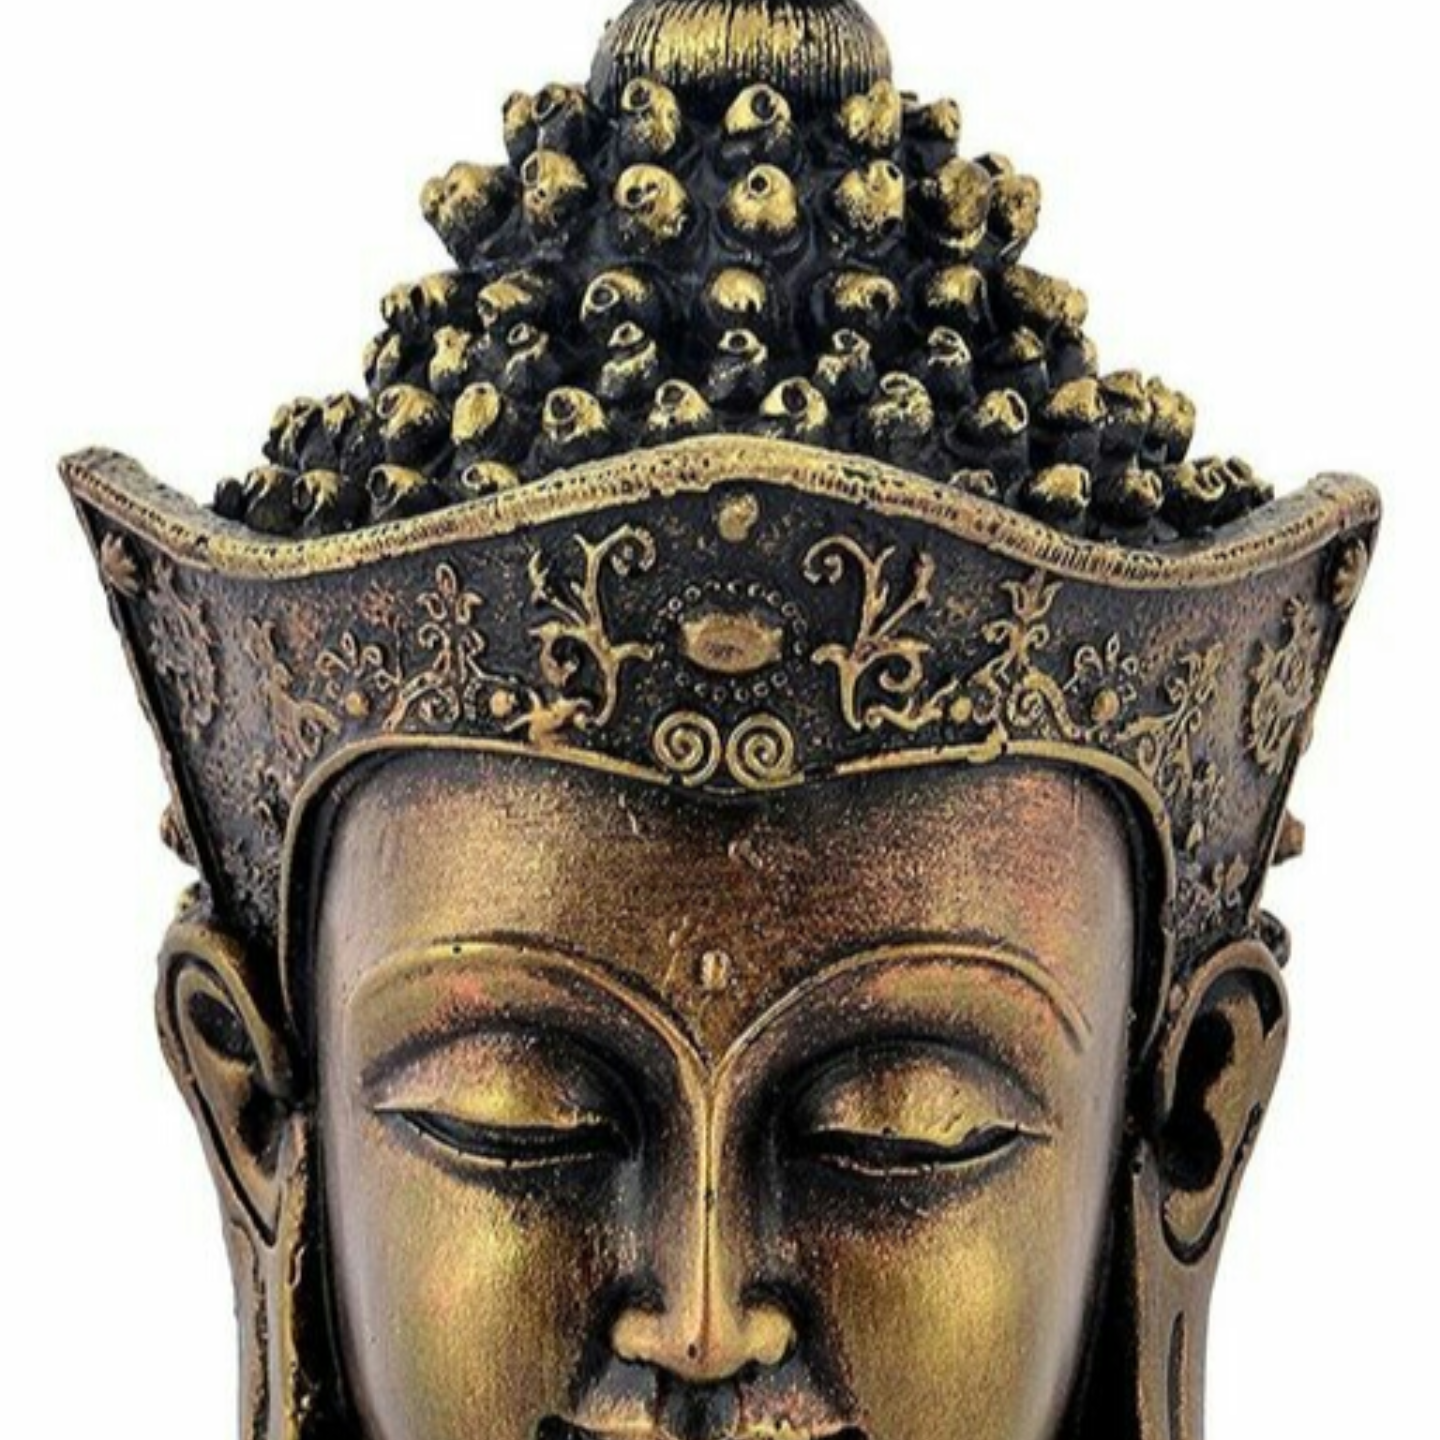 Budddha face table decor